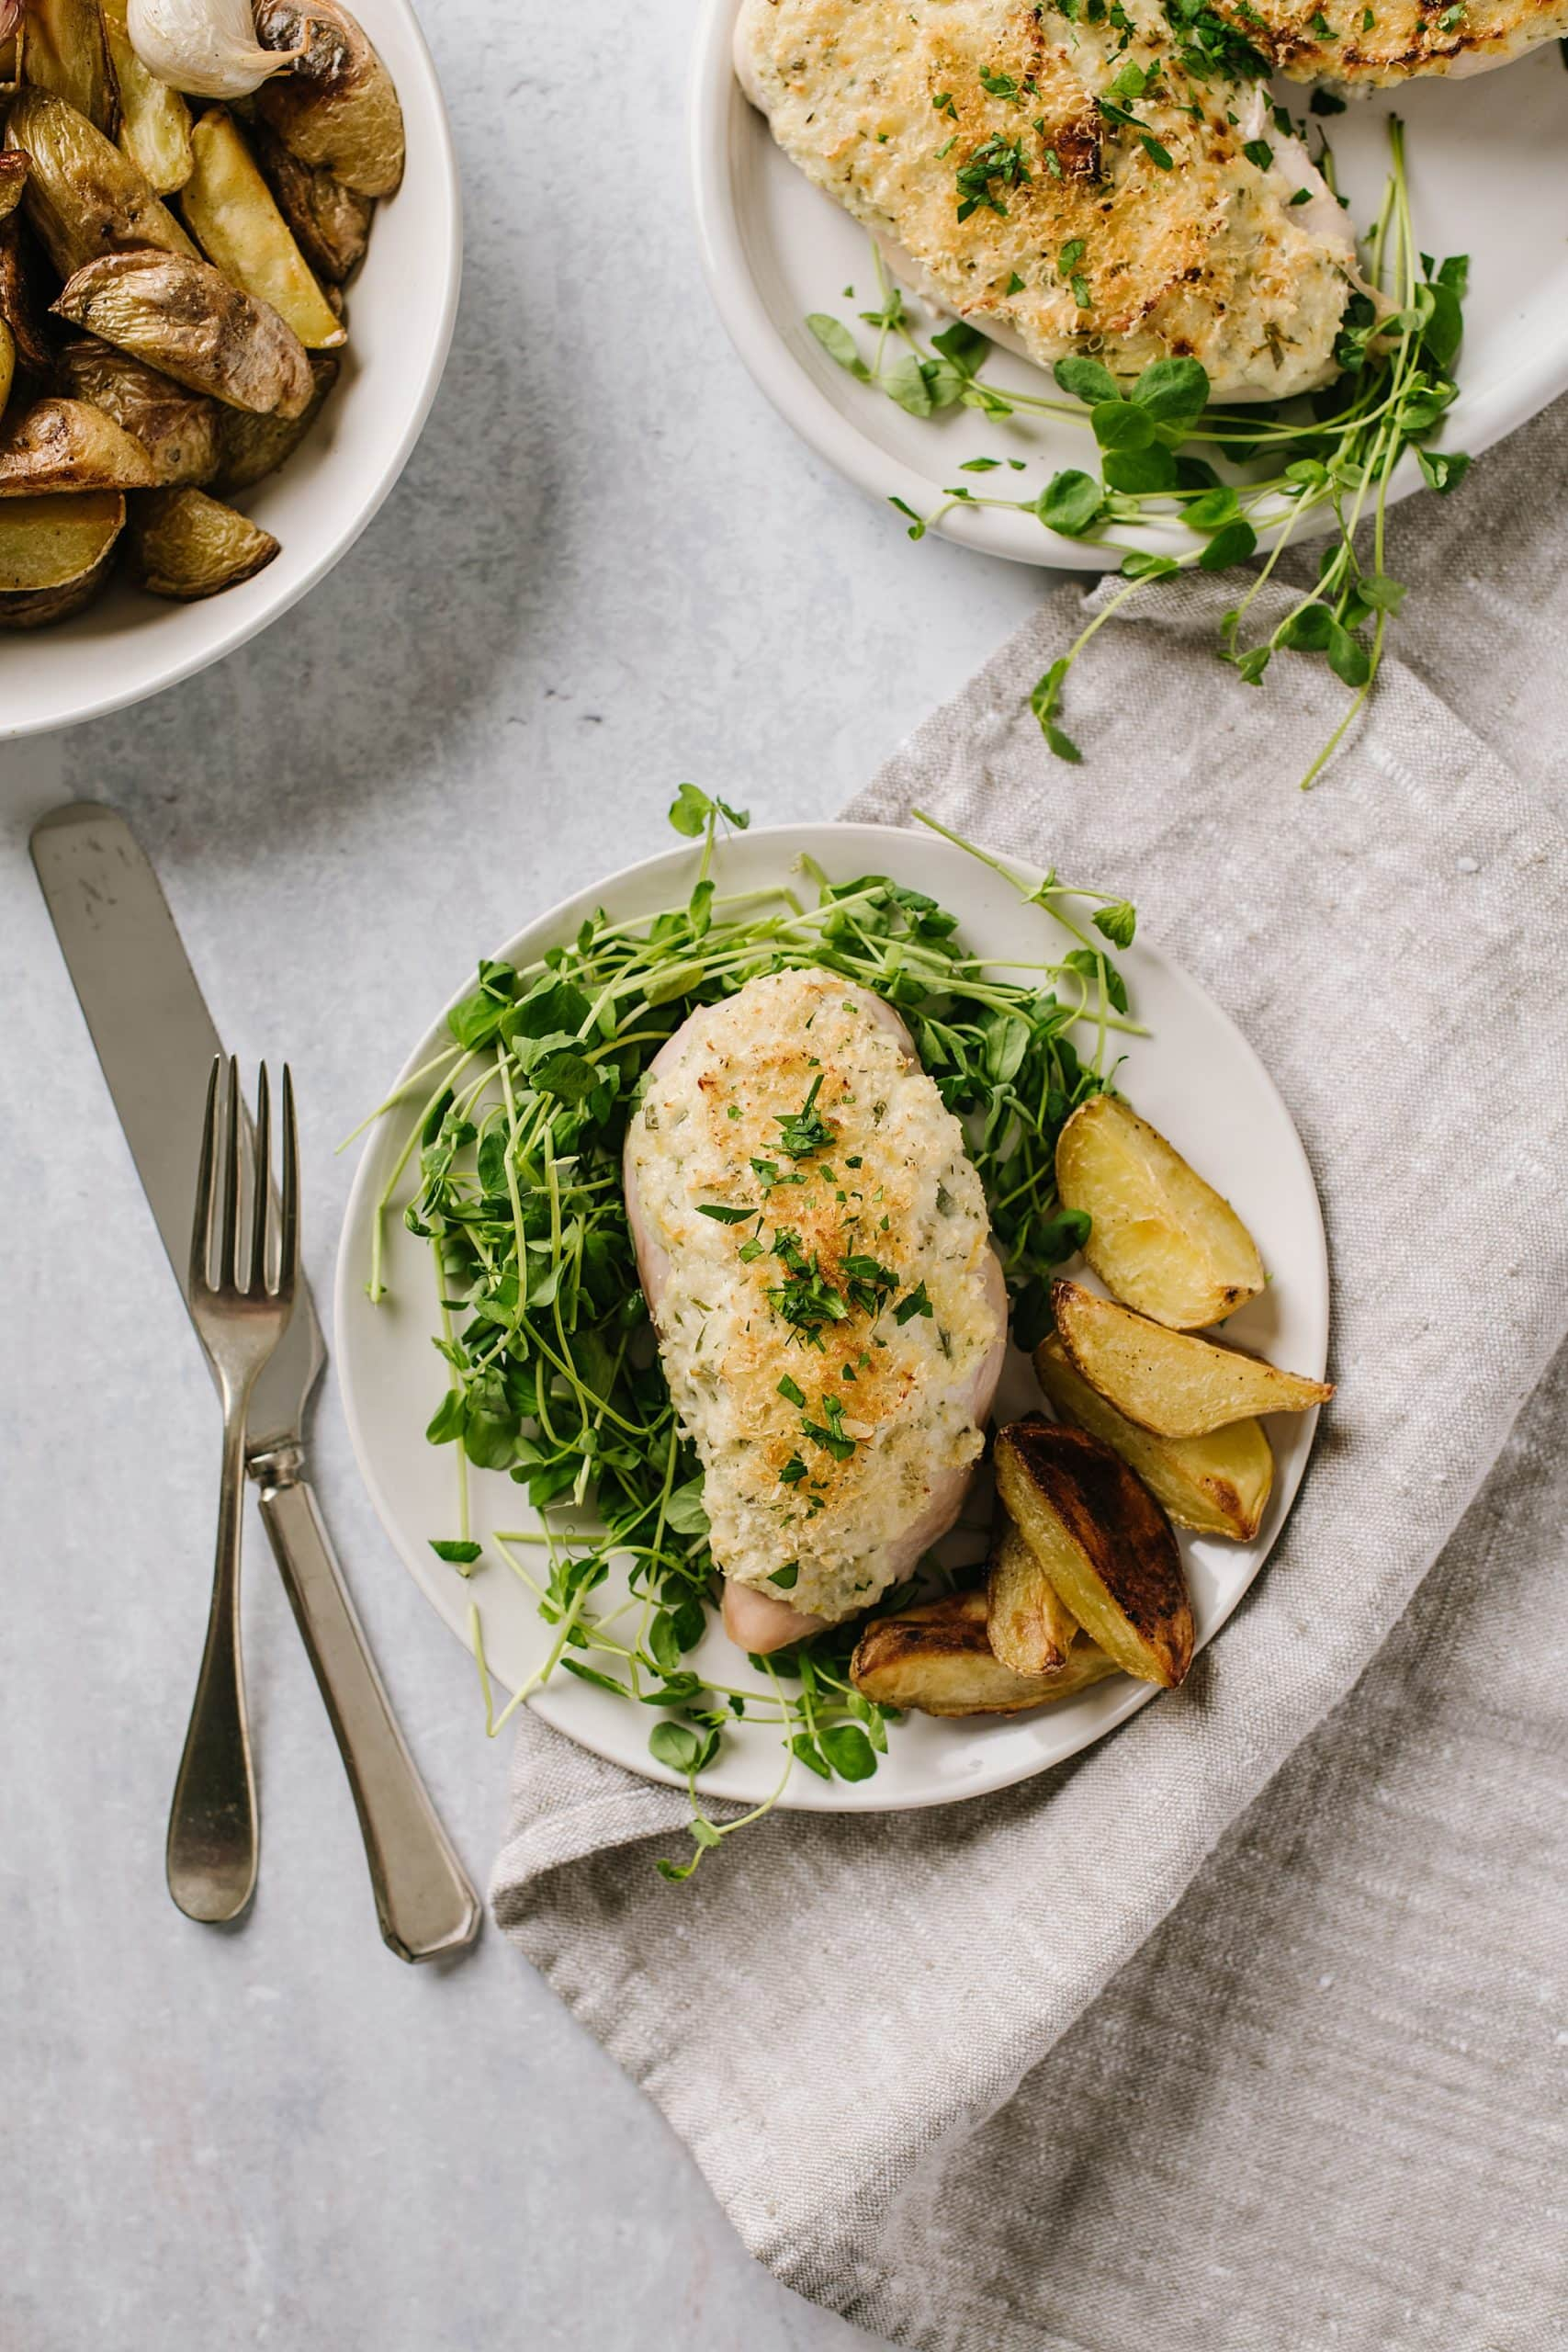 Baked Chicken Recipes Parmesan Mayo